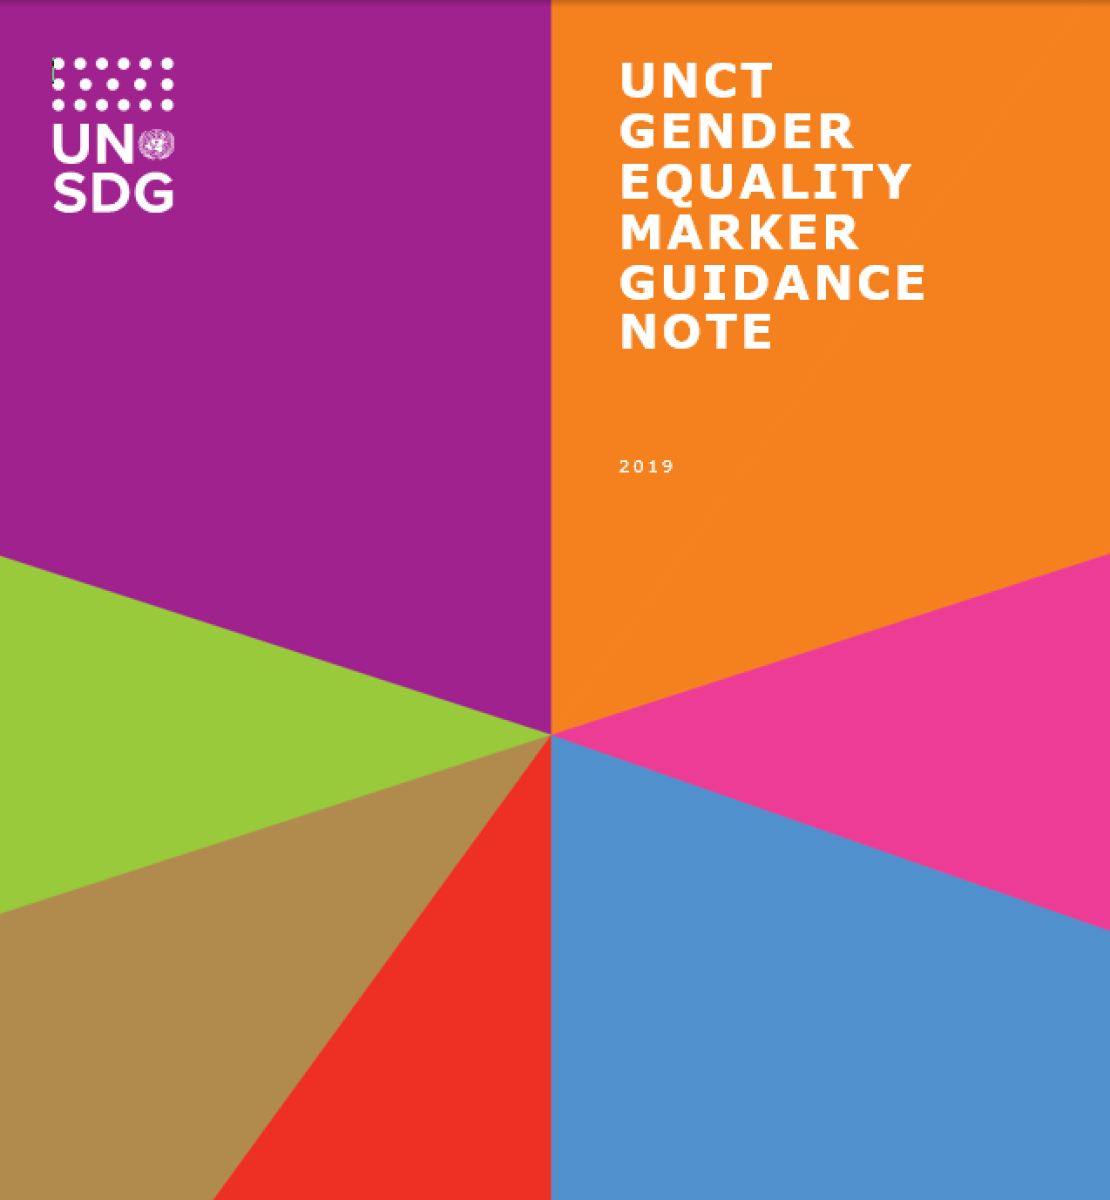 Cover of the UNCT Gender Equality Marker Guidance Note